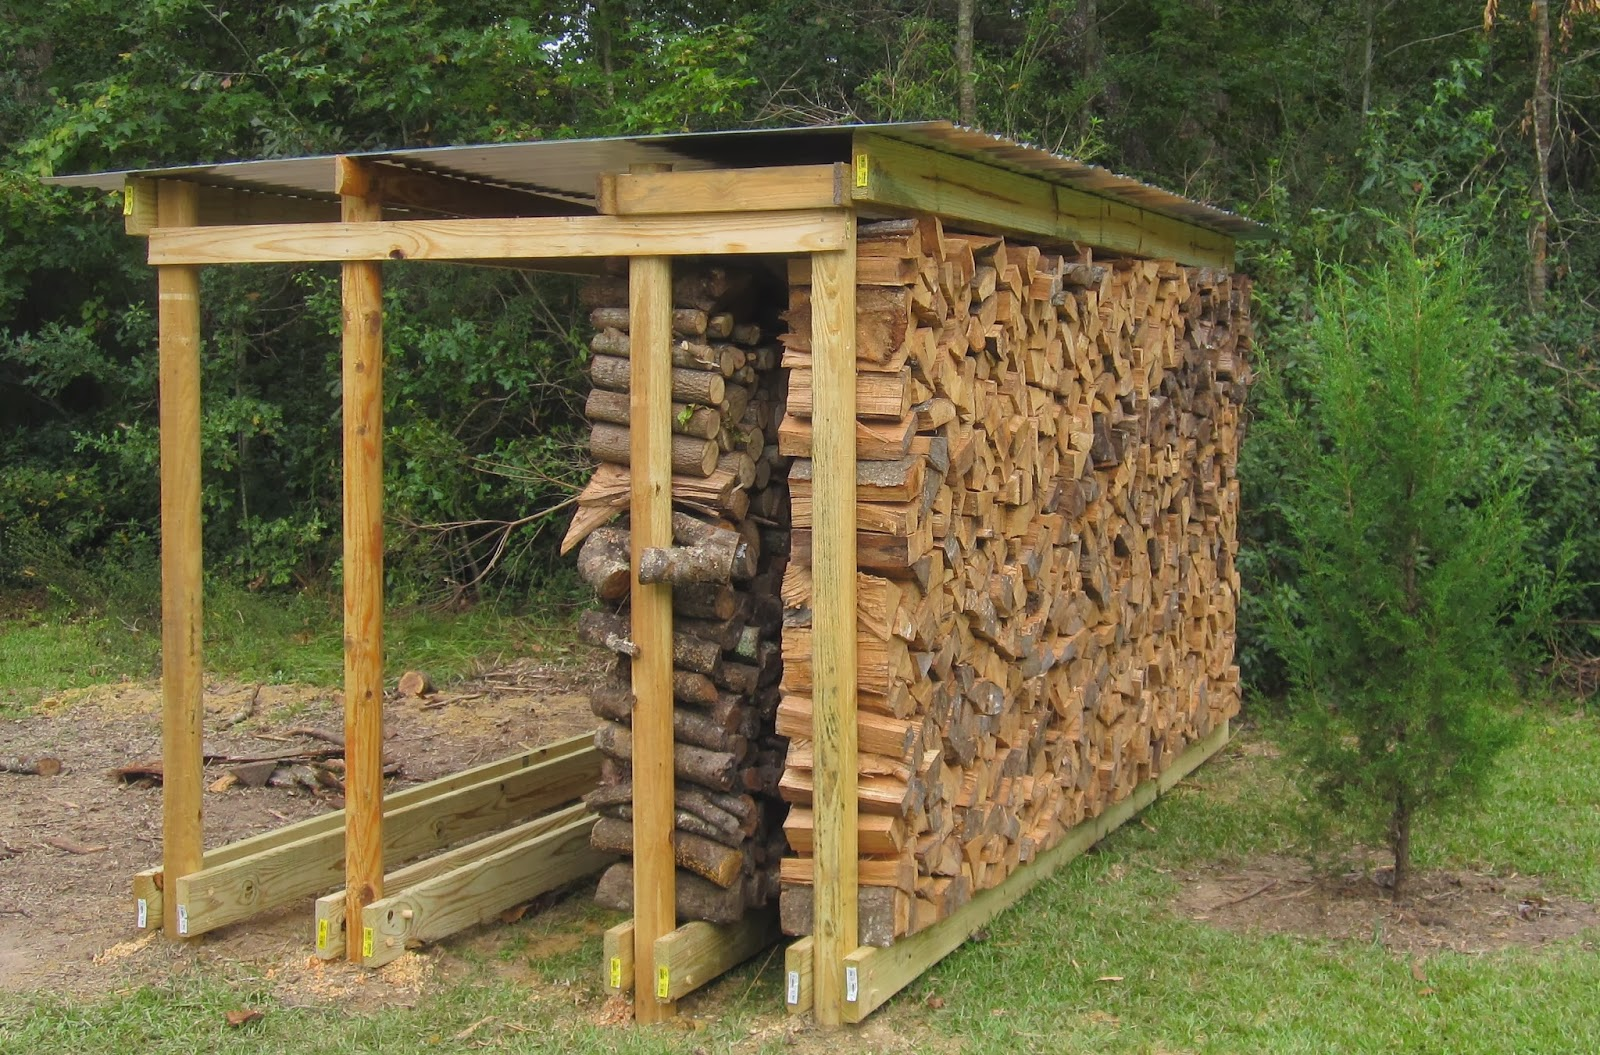 ... Plans To Build Your Own Firewood Rack. on homemade firewood rack plans